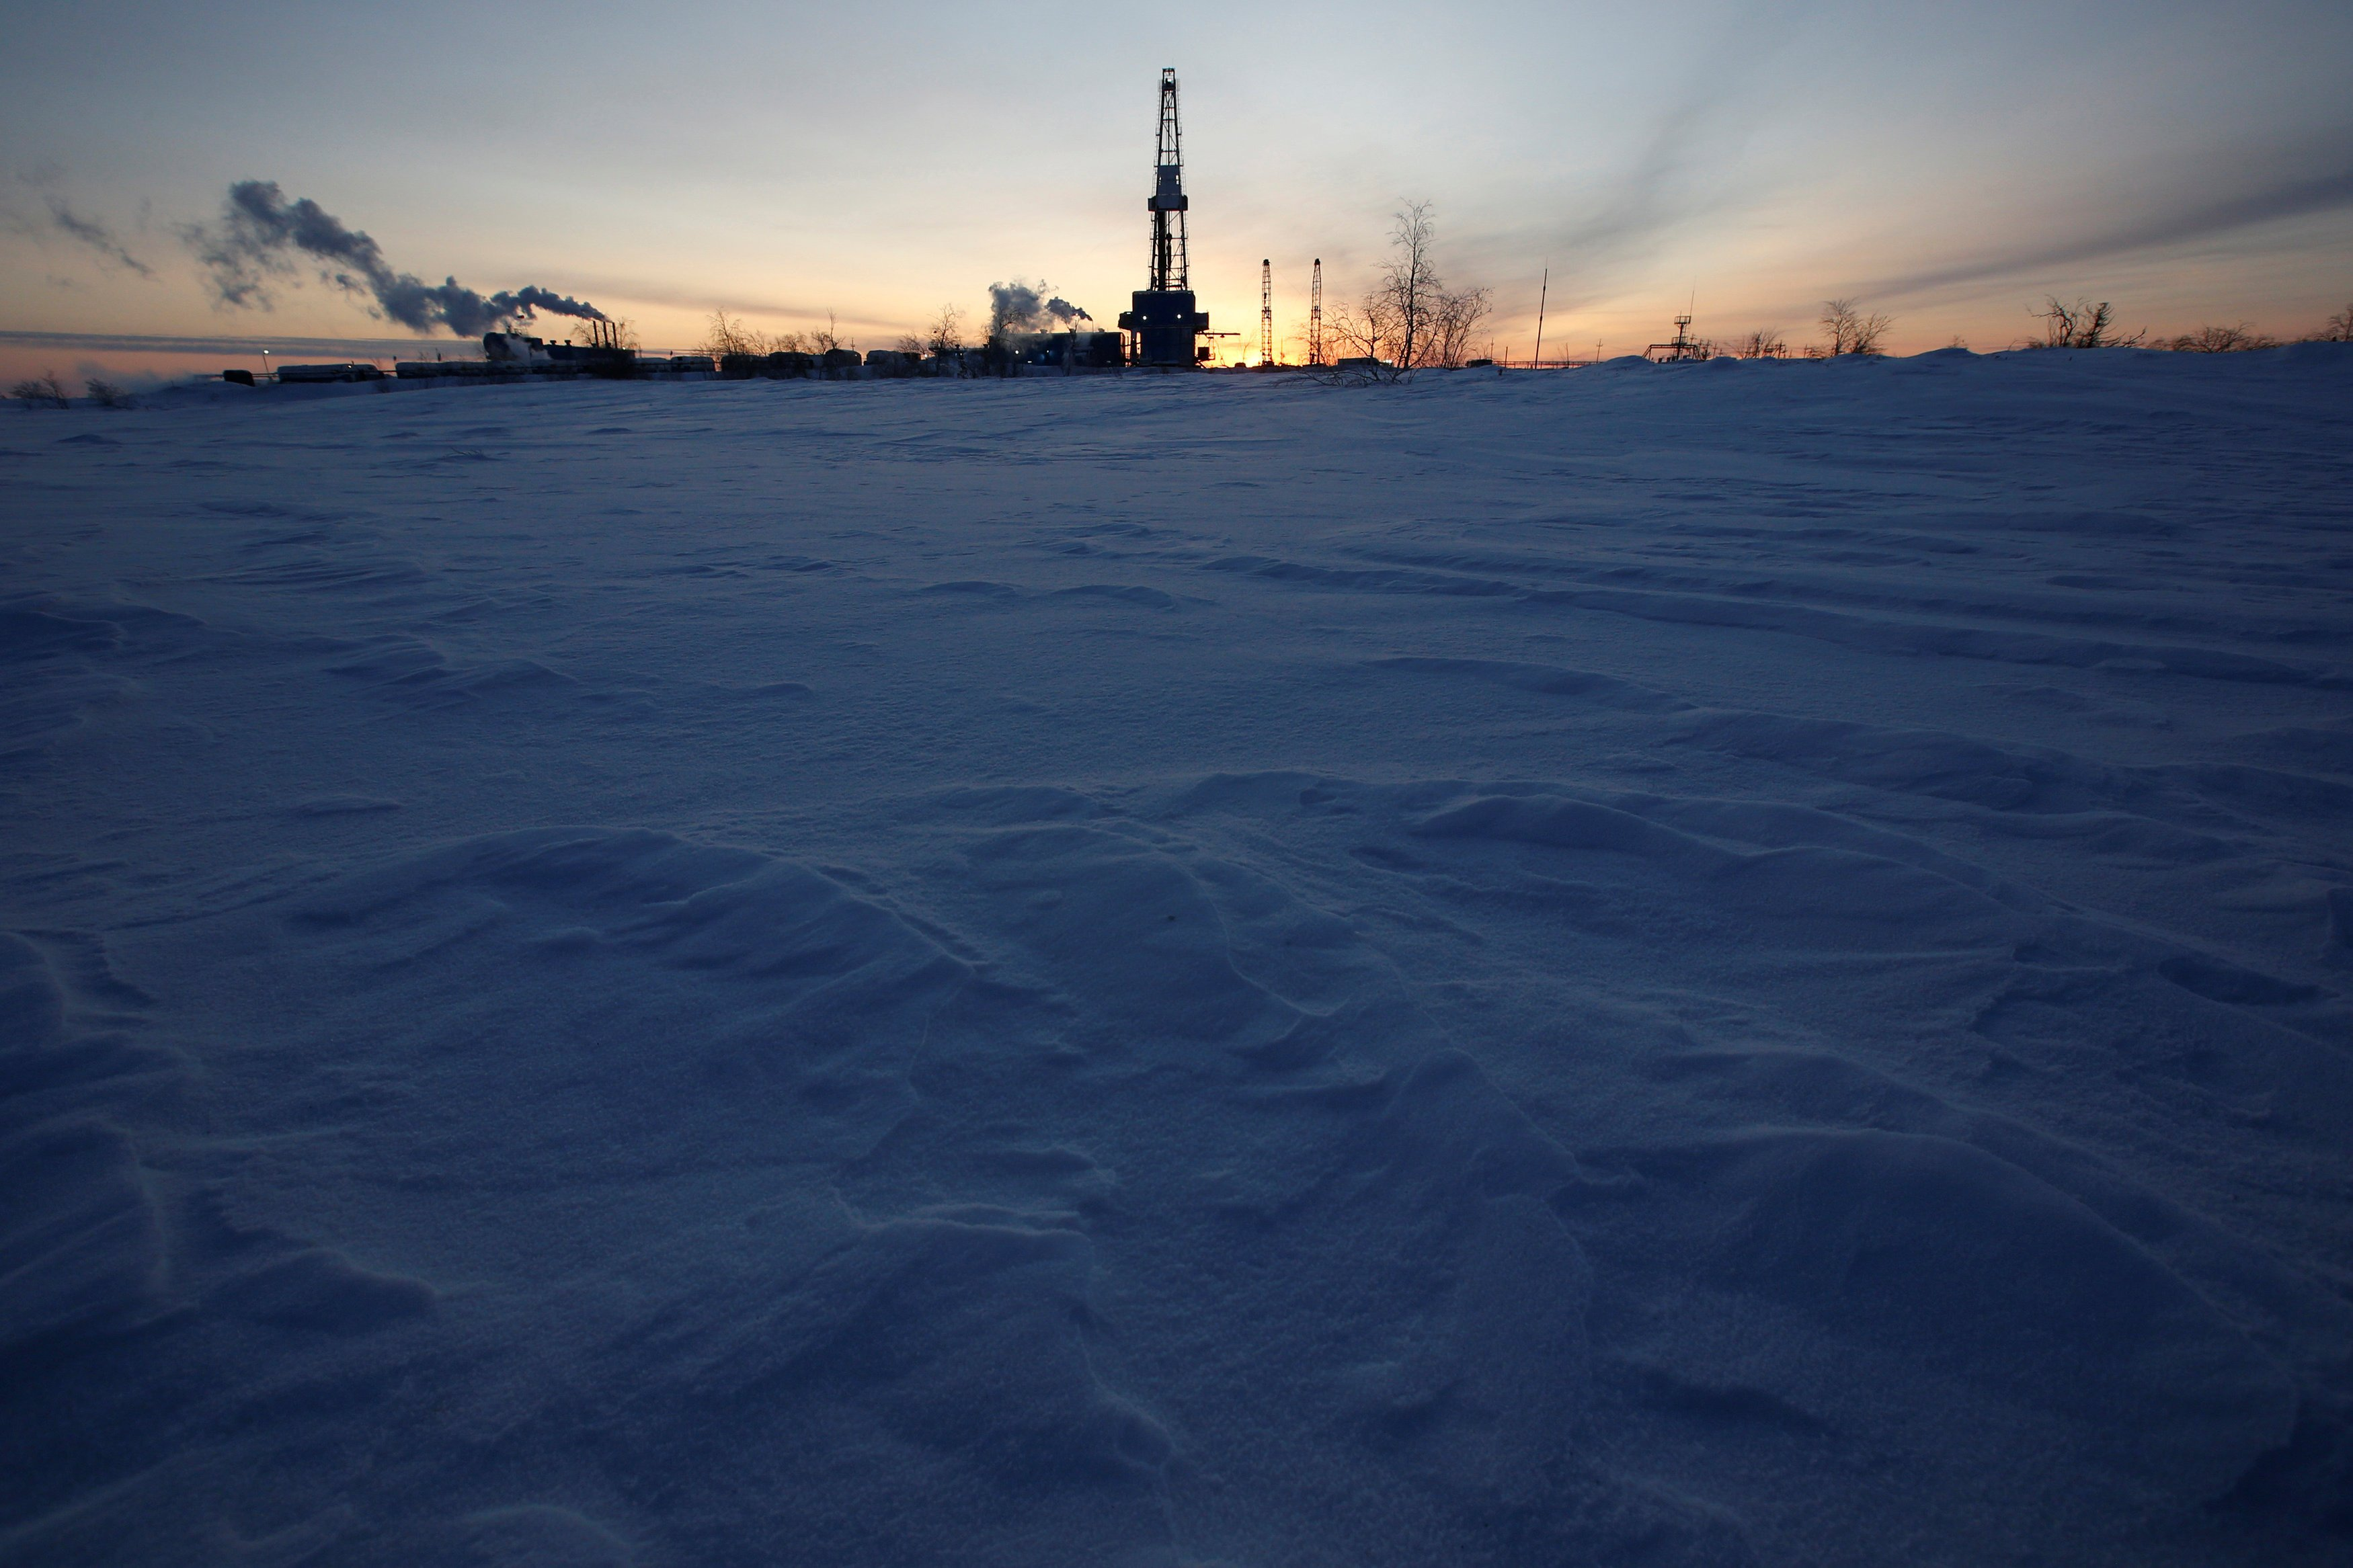 General Frost to the rescue: Cold helps Russia comply with OPEC deal